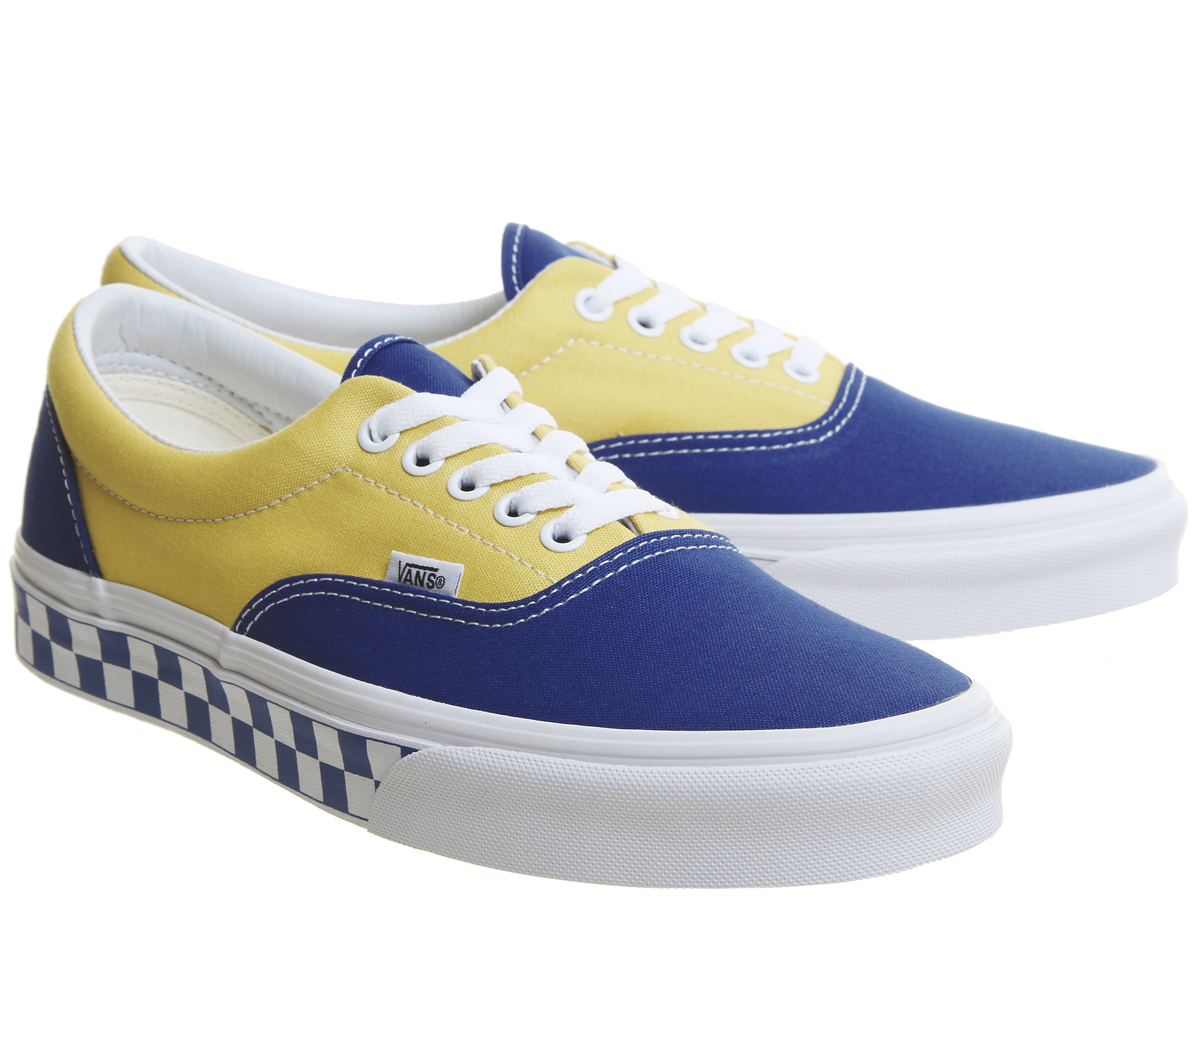 097870ee051 Vans Era Trainers True Blue Yellow Checkerboard Trainers Shoes